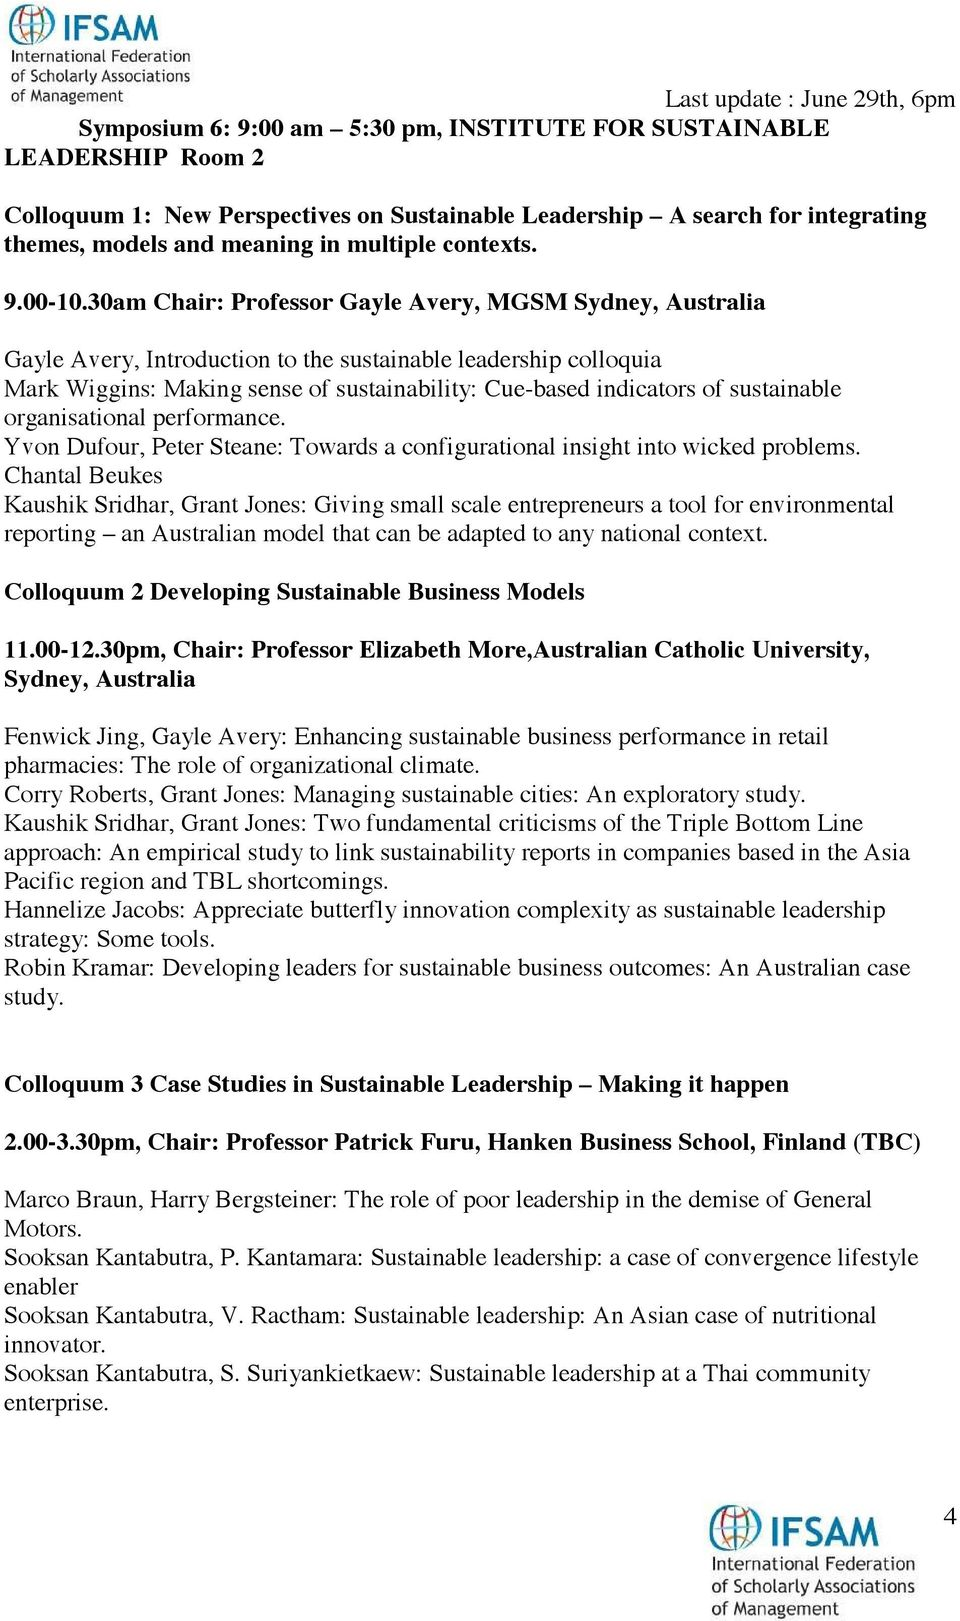 30am Chair: Professor Gayle Avery, MGSM Sydney, Australia Gayle Avery, Introduction to the sustainable leadership colloquia Mark Wiggins: Making sense of sustainability: Cue-based indicators of